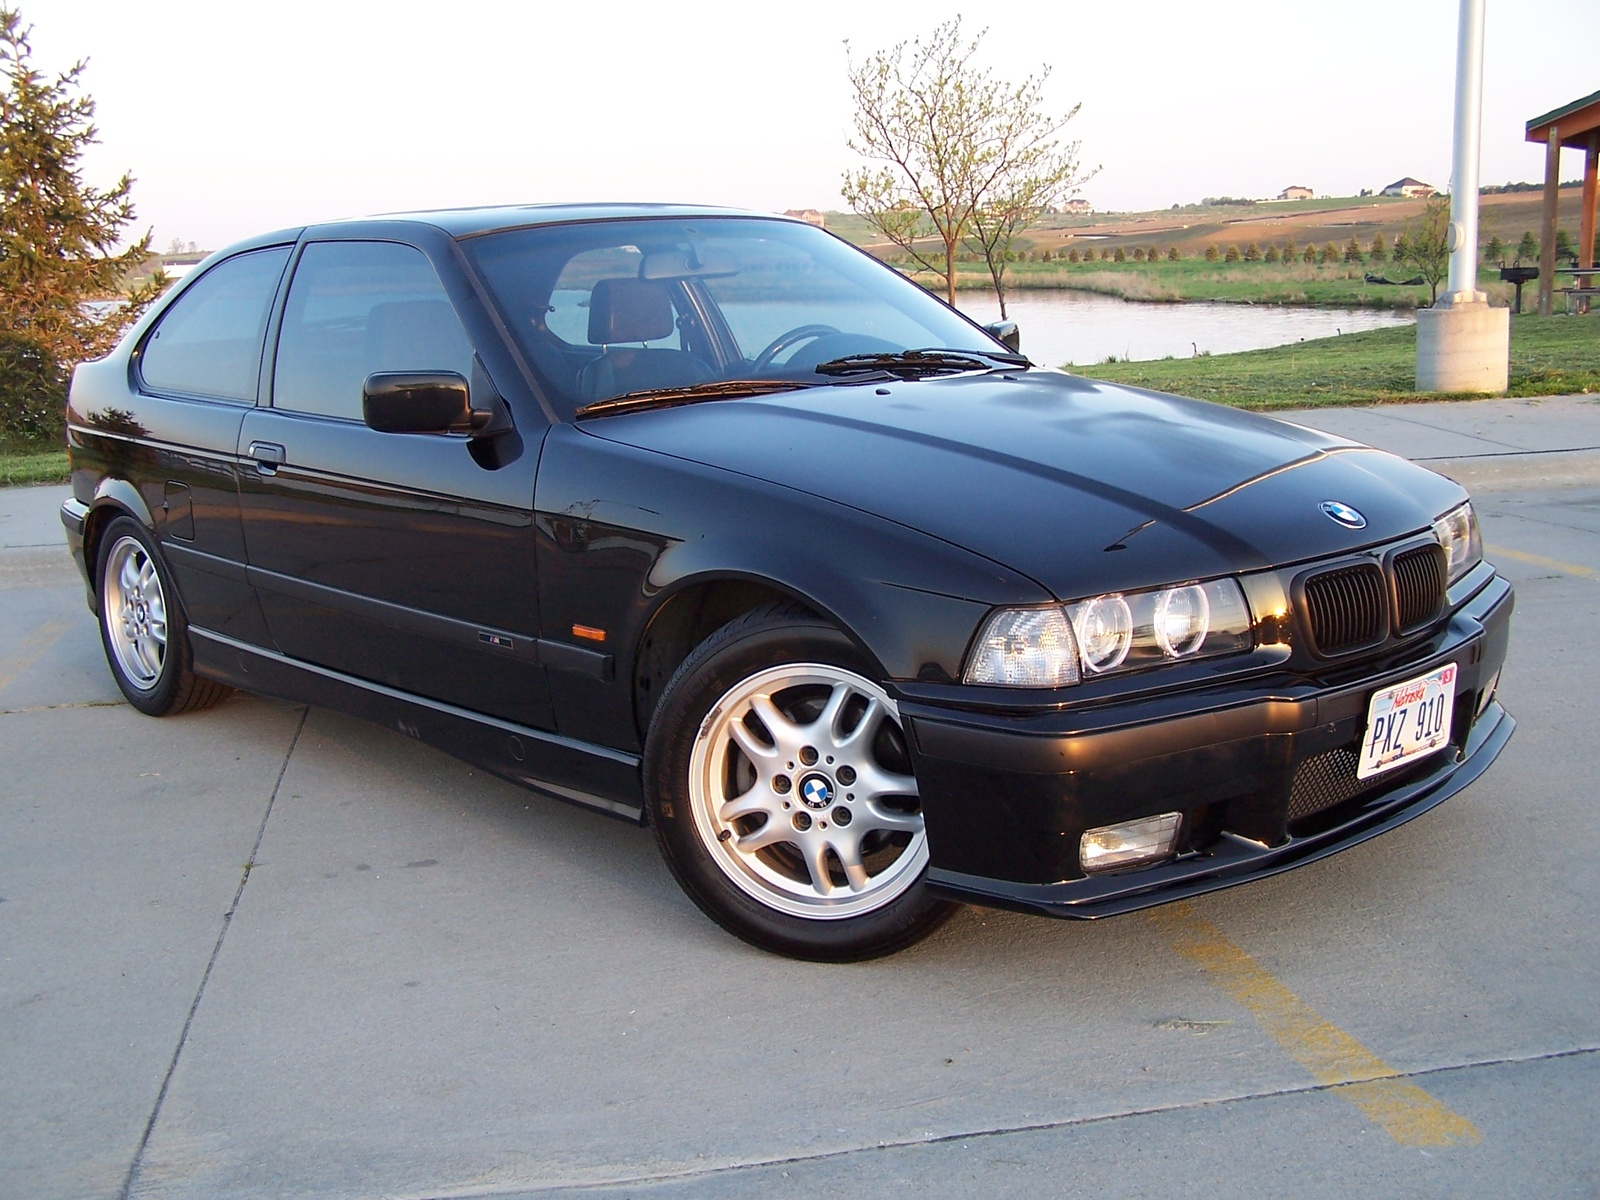 BMW 3 series 318Ci 1997 photo - 11